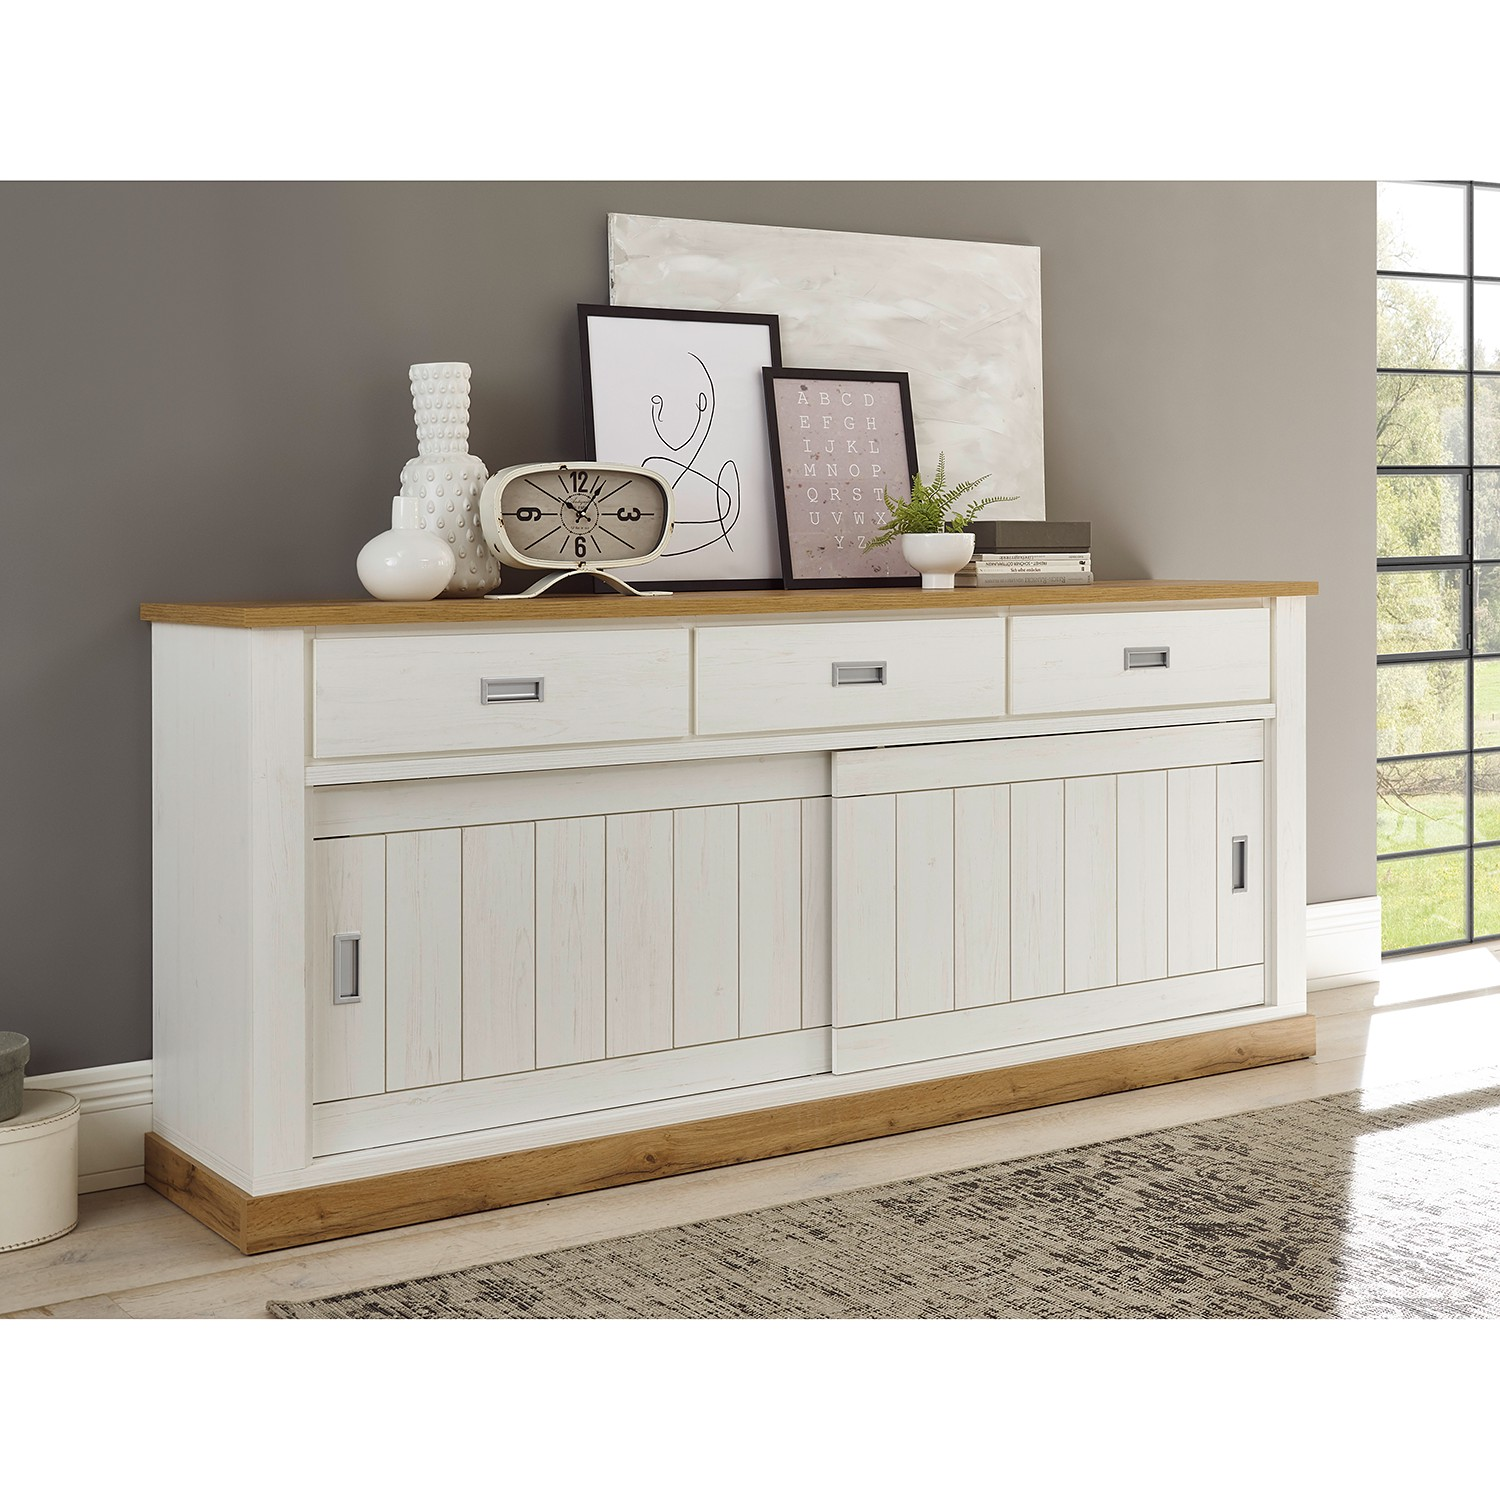 home24 Sideboard Ollezy II